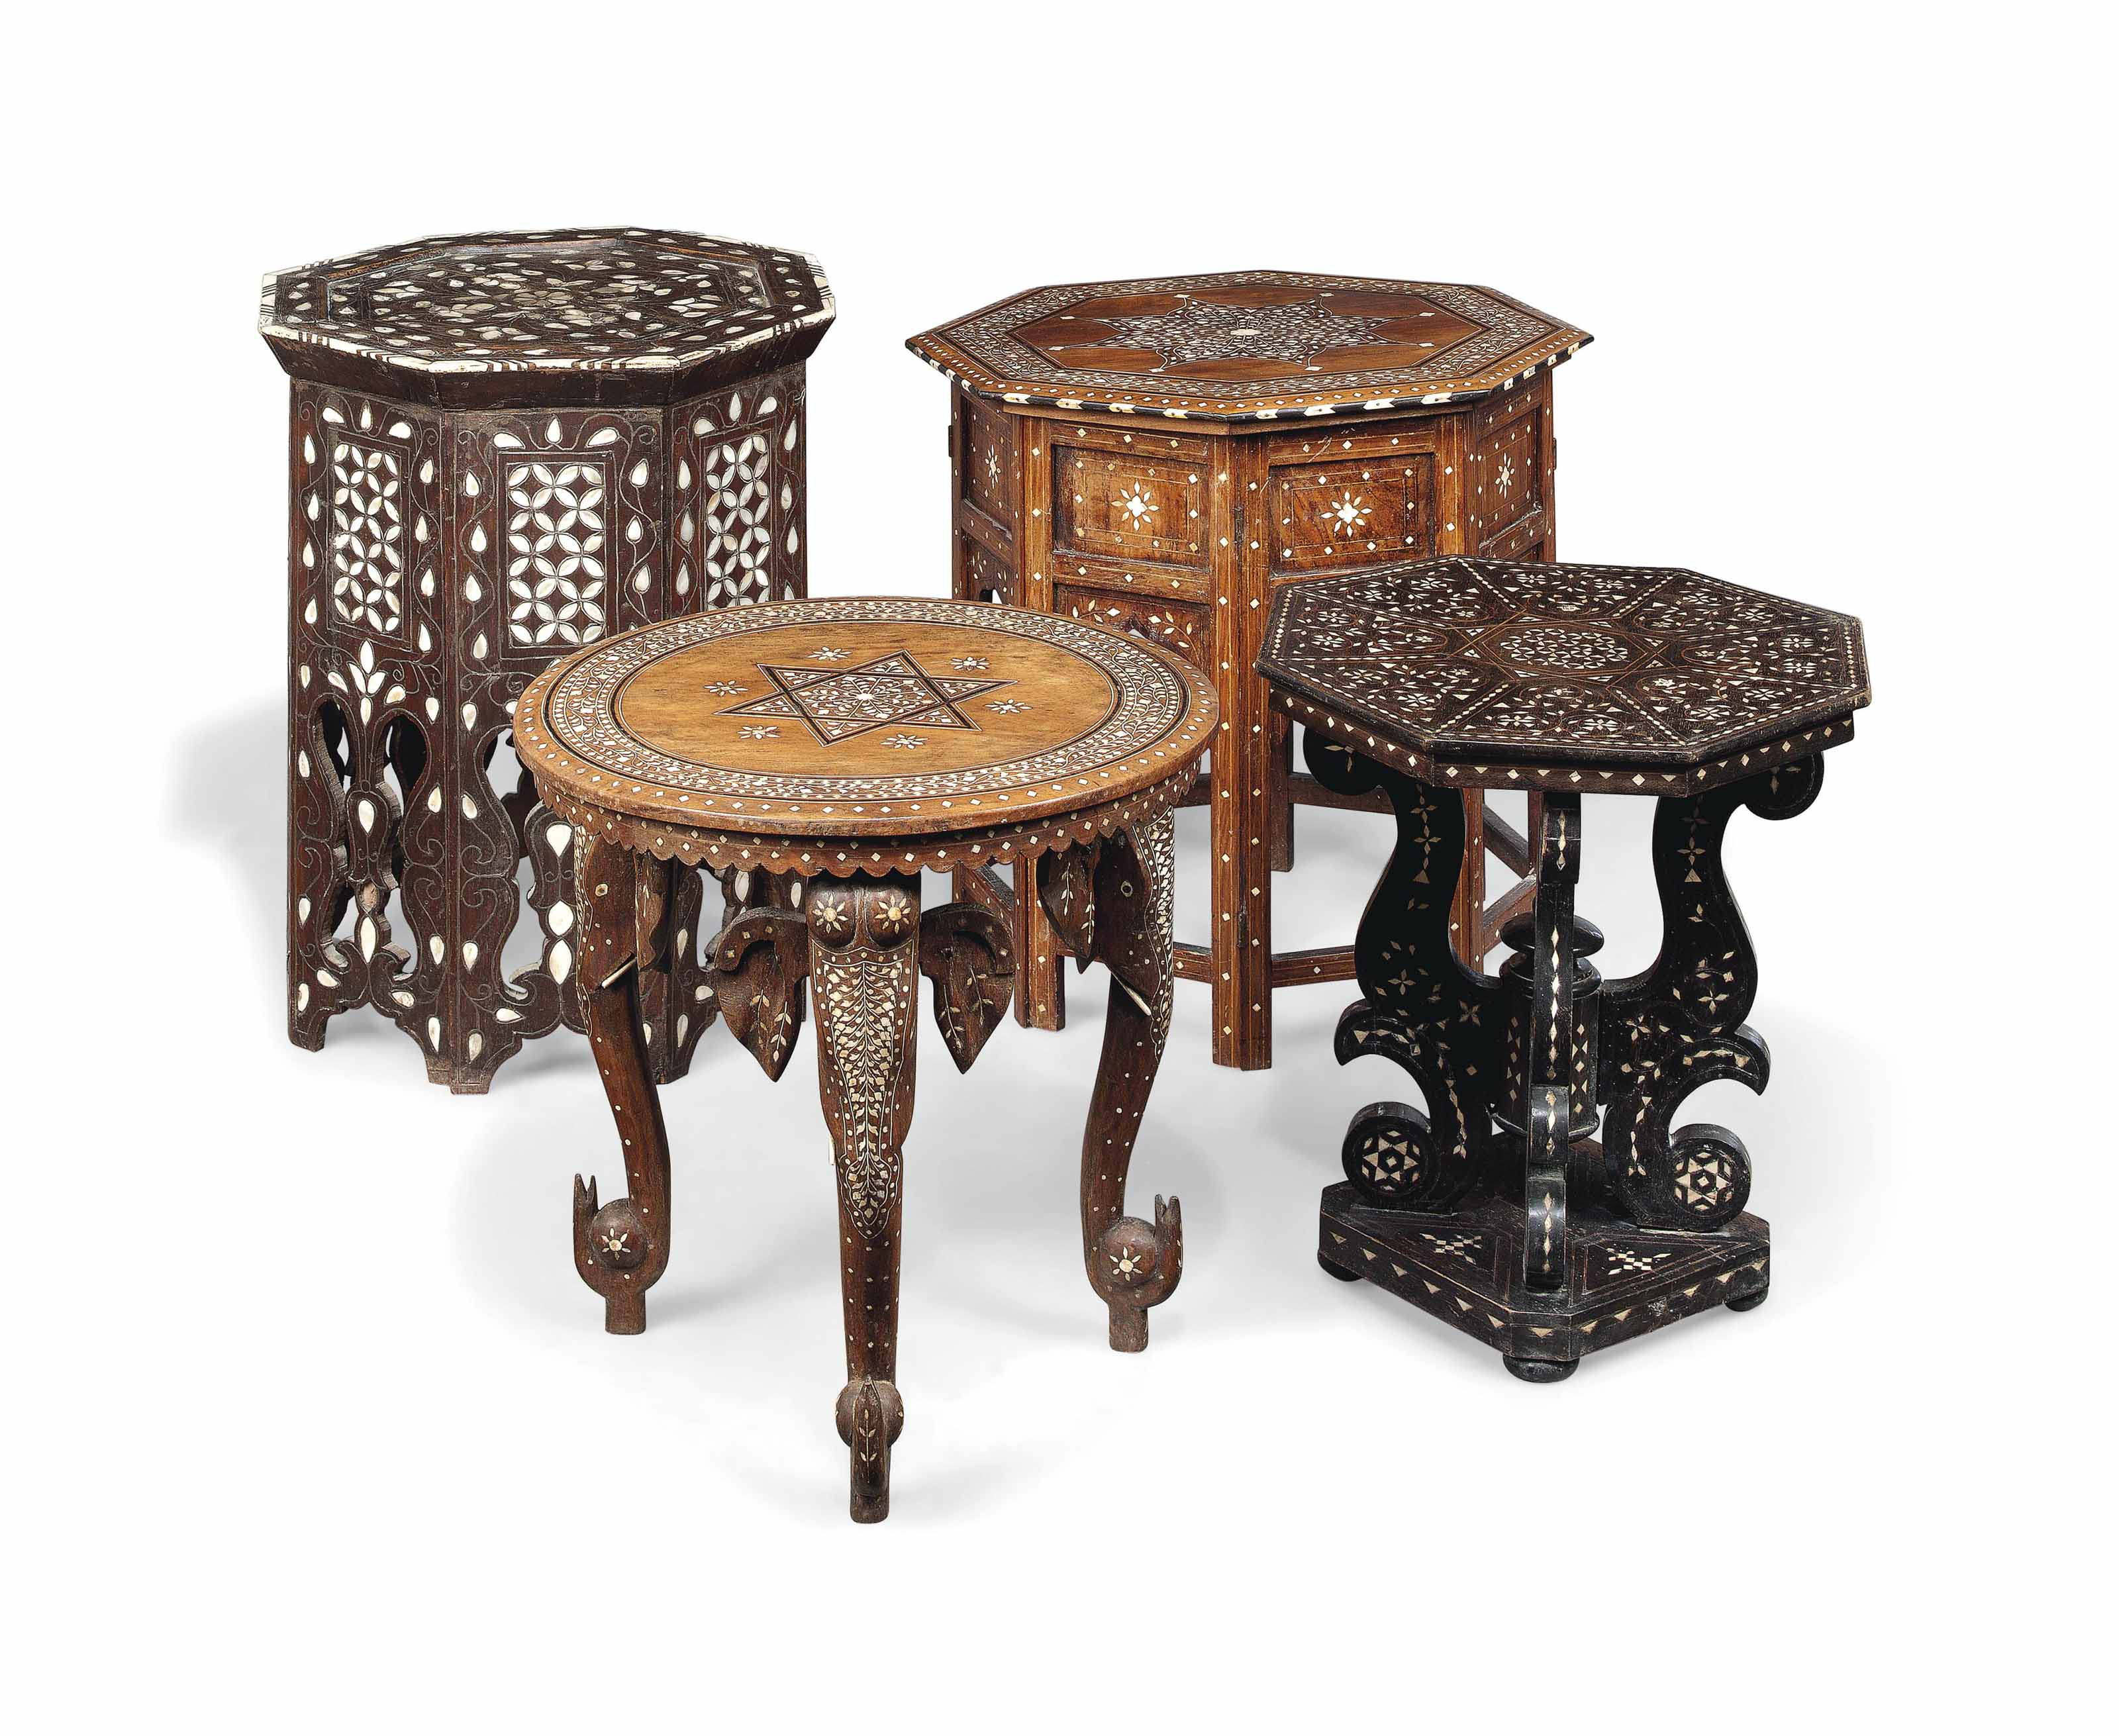 A GROUP OF FOUR BONE AND MOTHER-OF-PEARL INLAID HARDWOOD OCCASIONAL TABLES